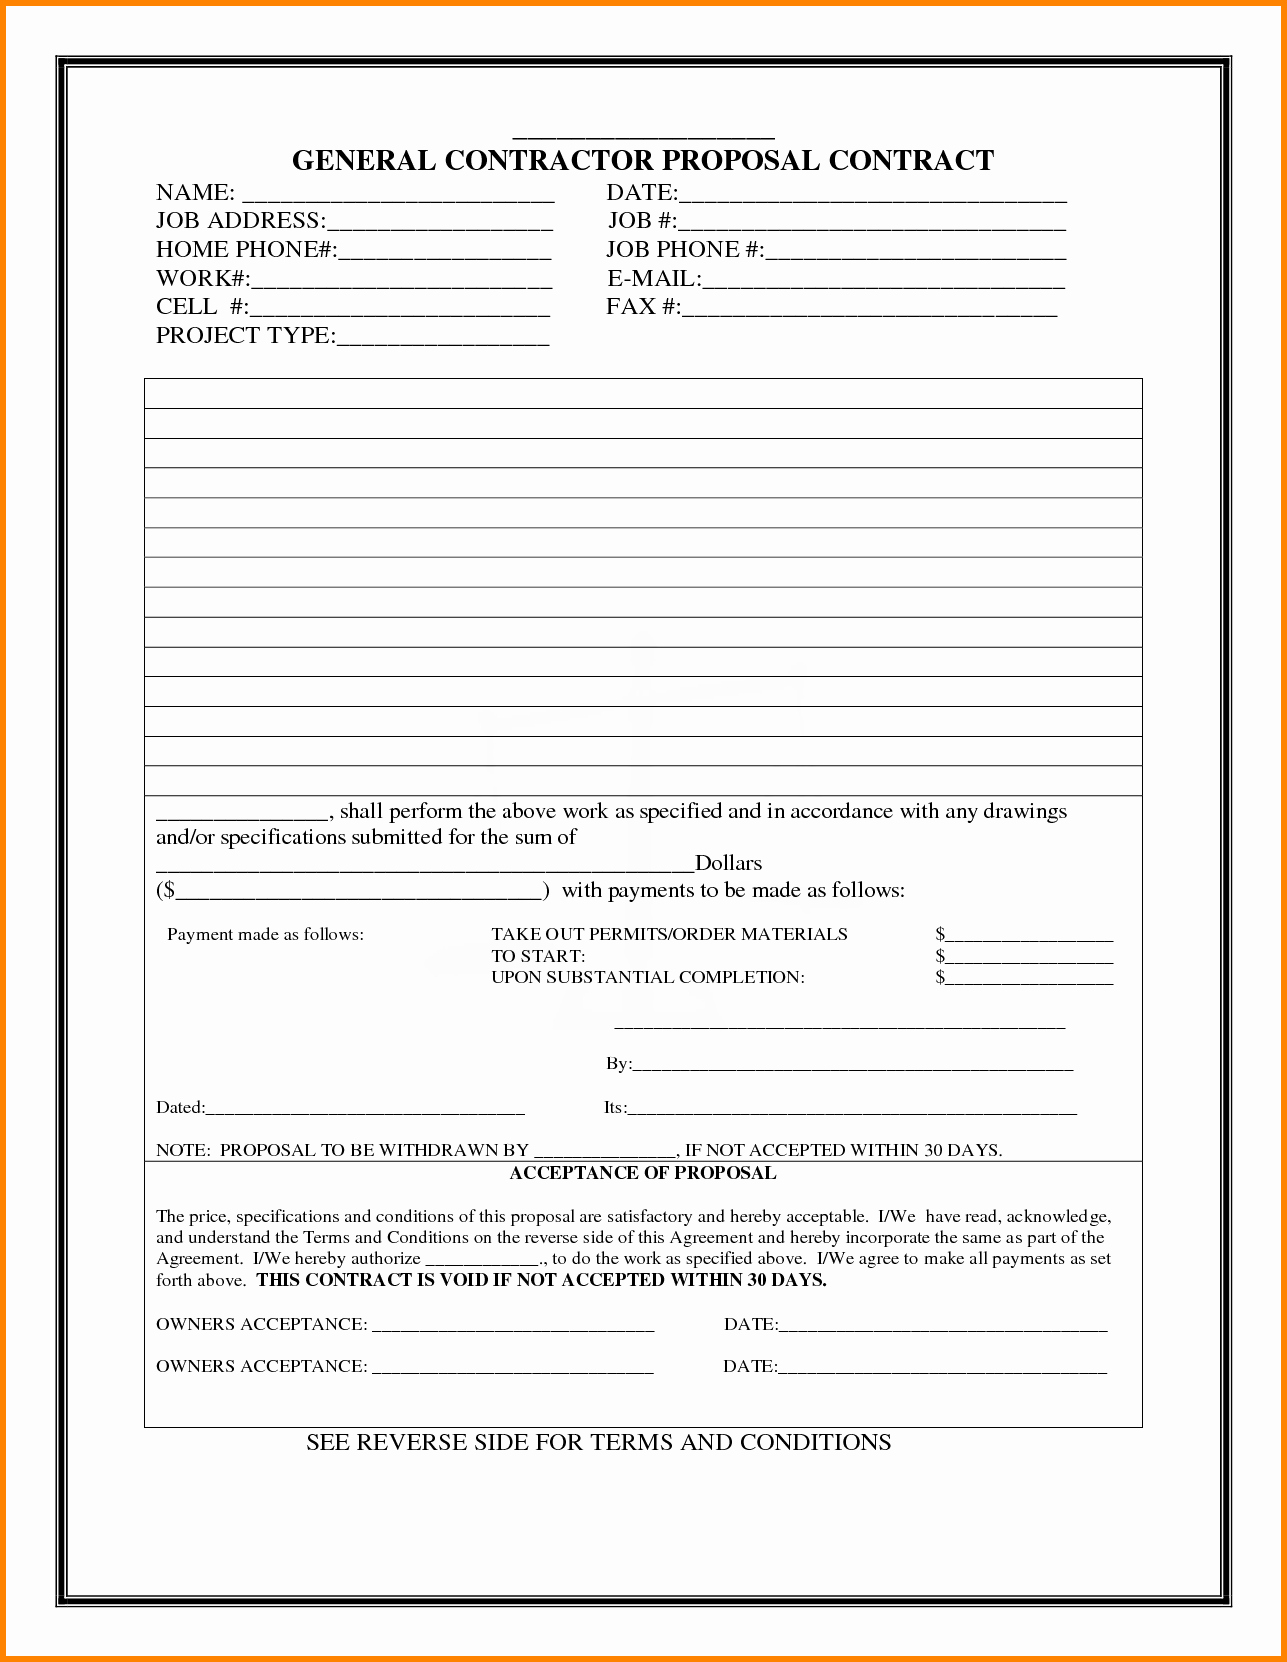 free contractor proposal template white paper doc construction word doc general templates 17